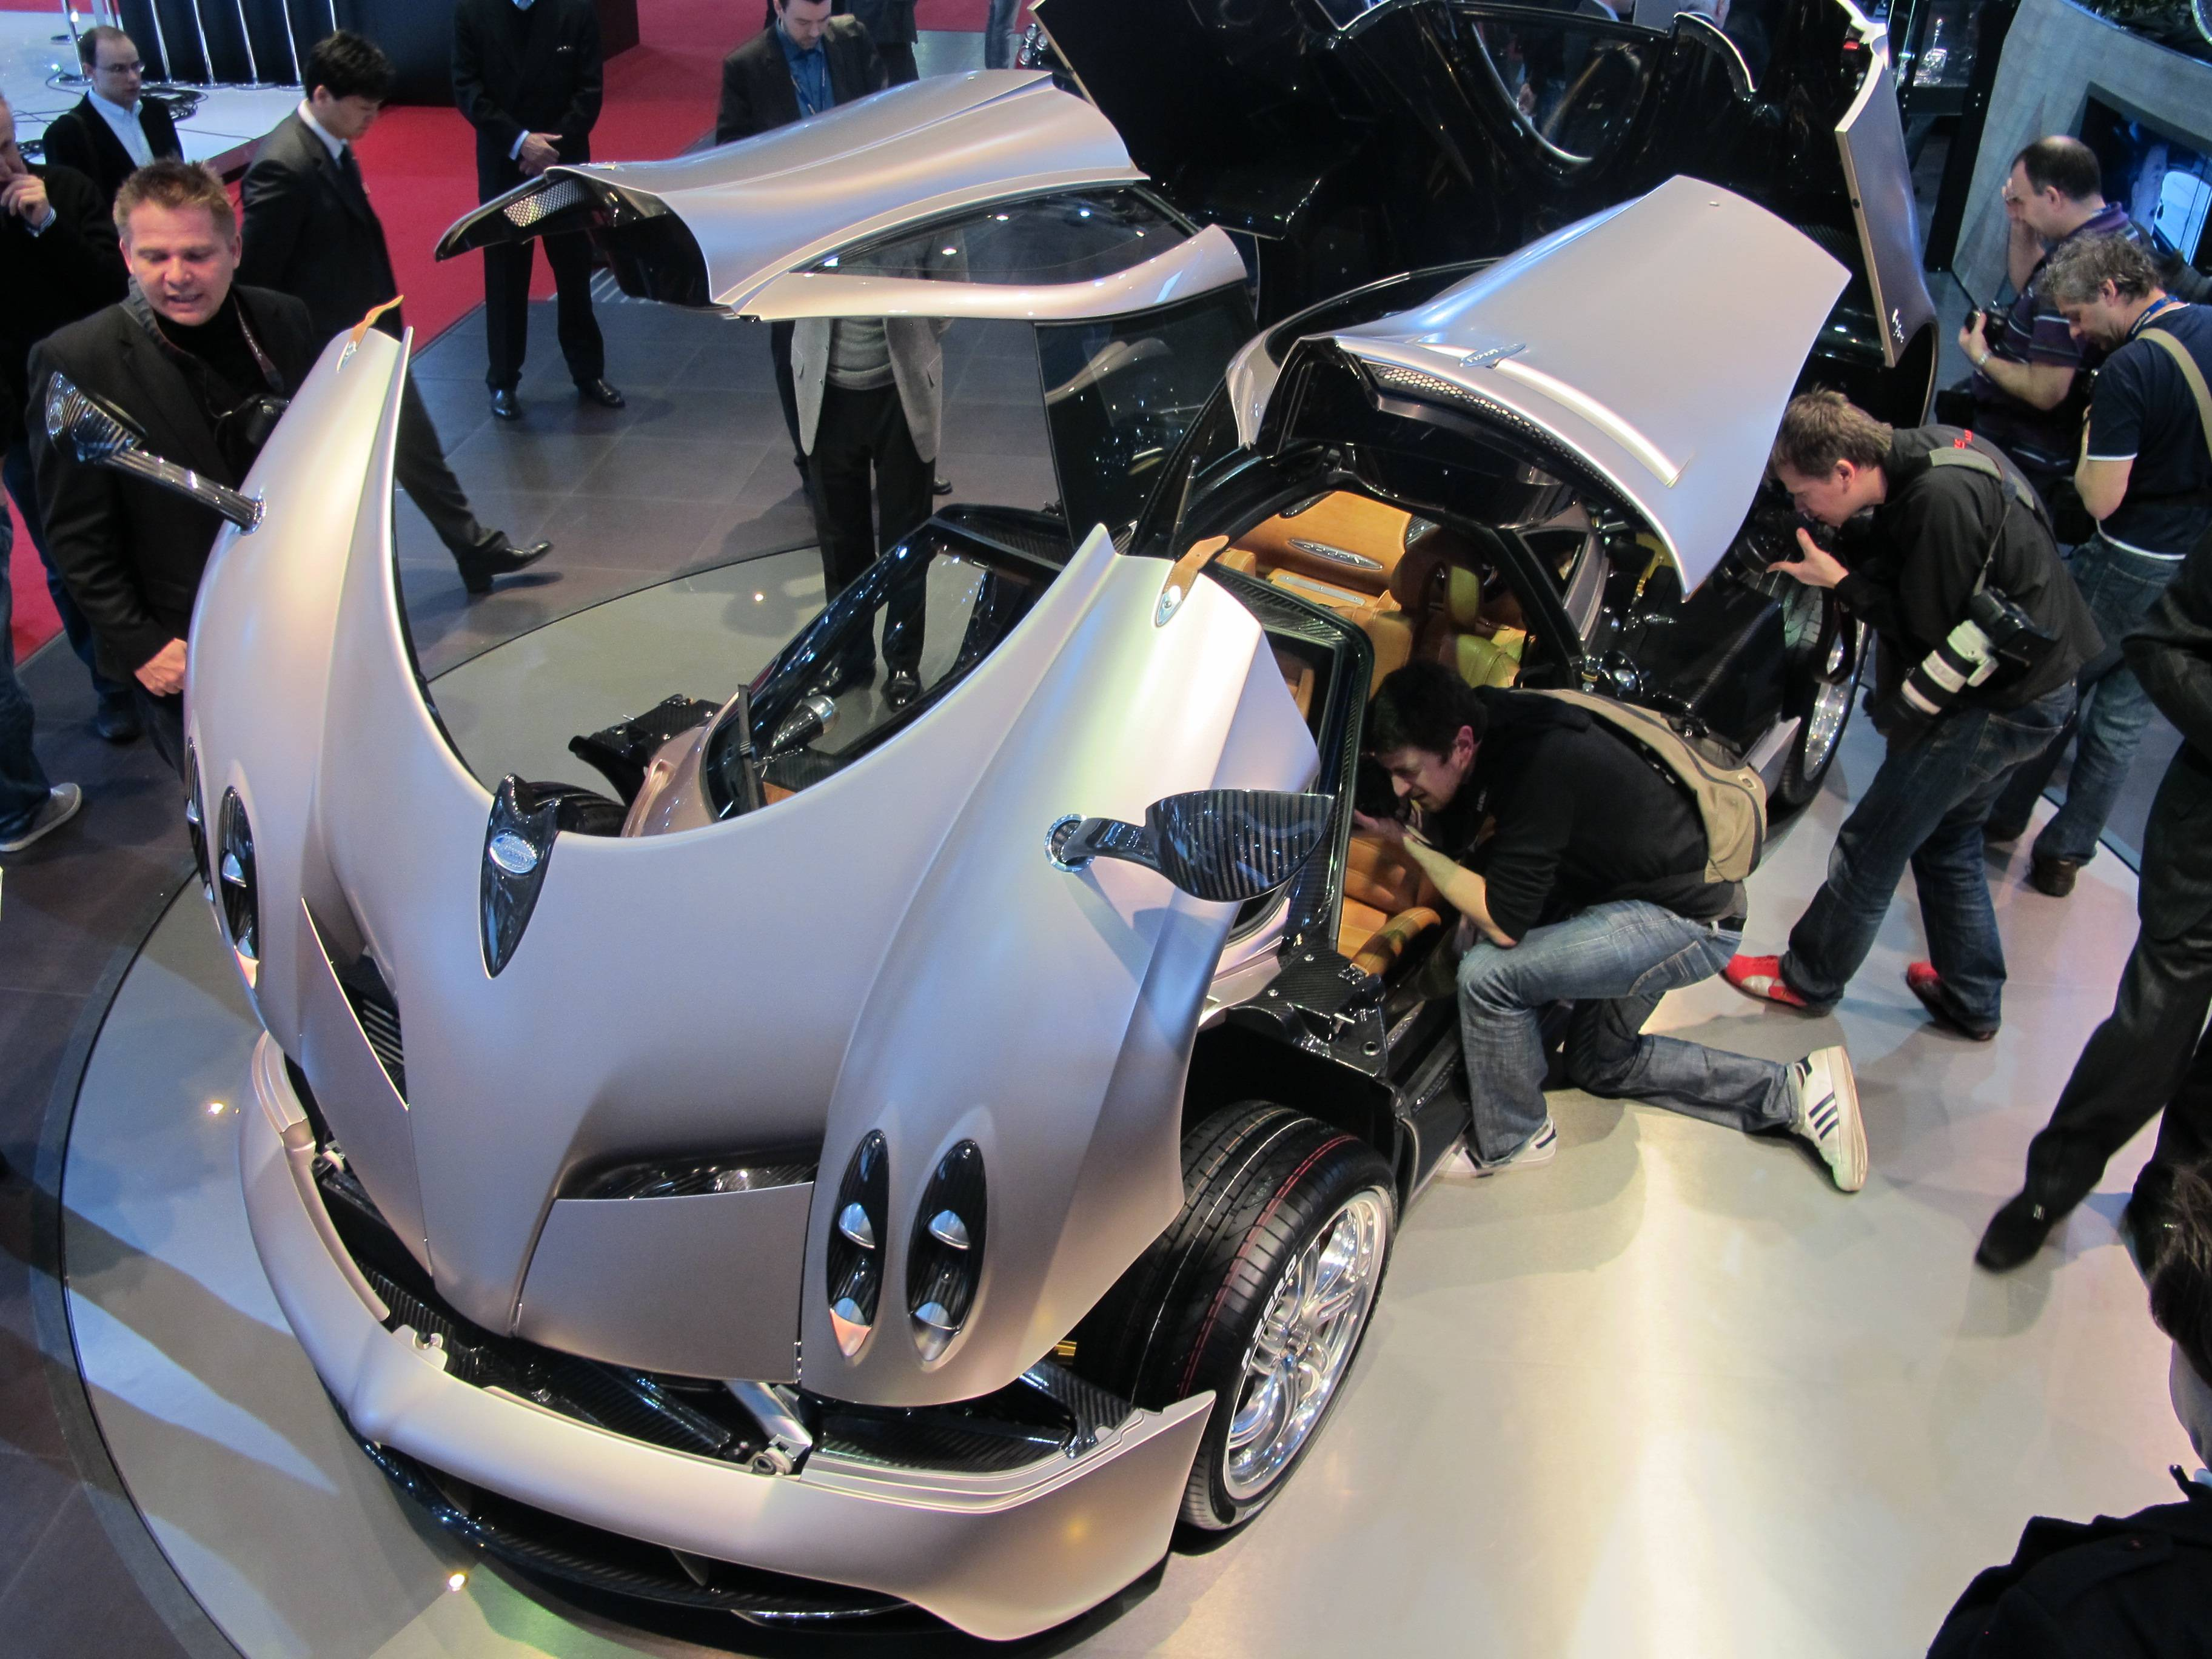 Geneva Motor Show - Pagani Love. If it sounds Italian, it is Italian